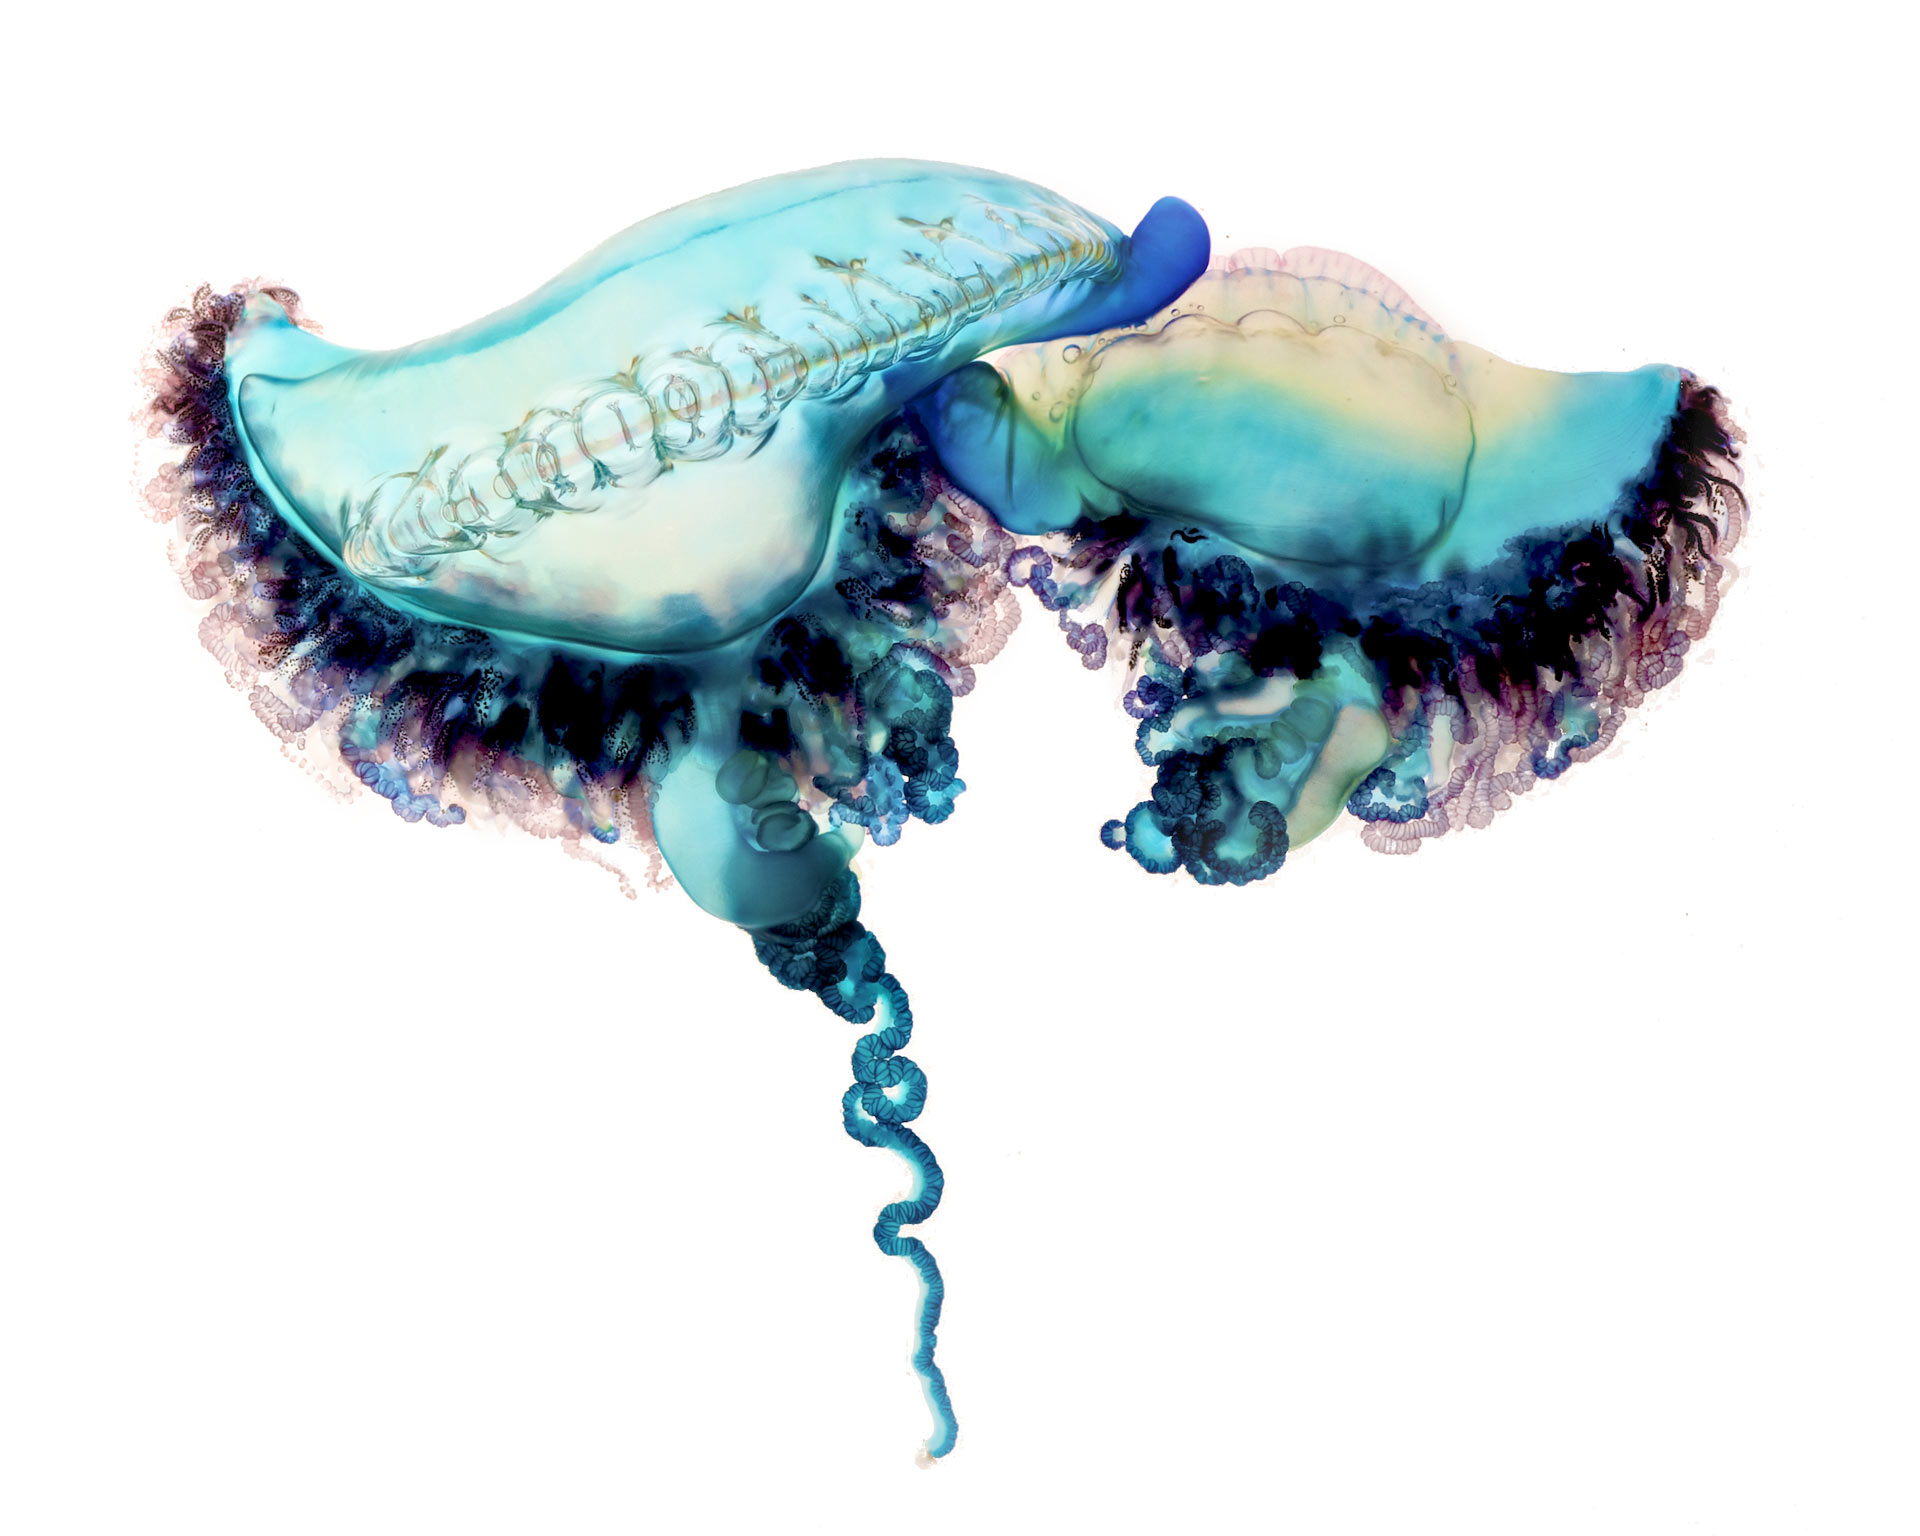 Photo by Aaron Ansarov - http://news.nationalgeographic.com/news/features/2014/08/140821-portuguese-man-of-war-animal-ocean-science-pictures/